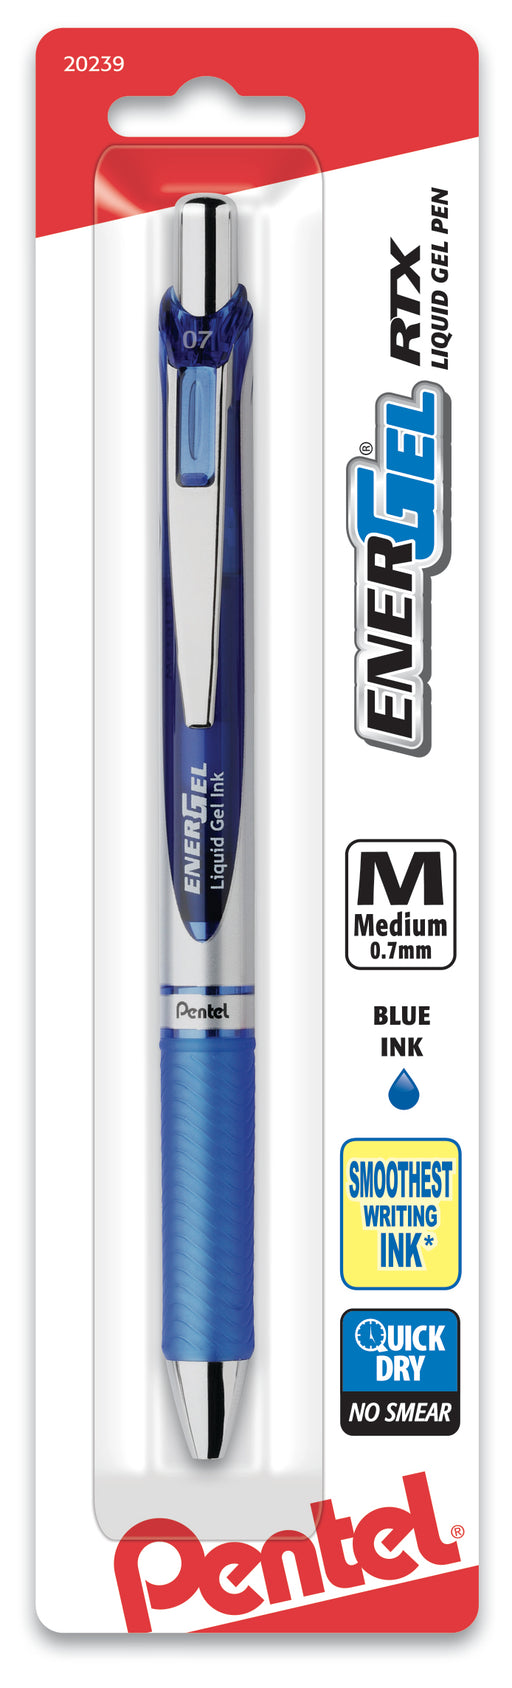 EnerGel RTX Retractable Liquid Gel Pen, (0.7mm) Metal Tip, Medium Line, Blue Ink 1-Pk